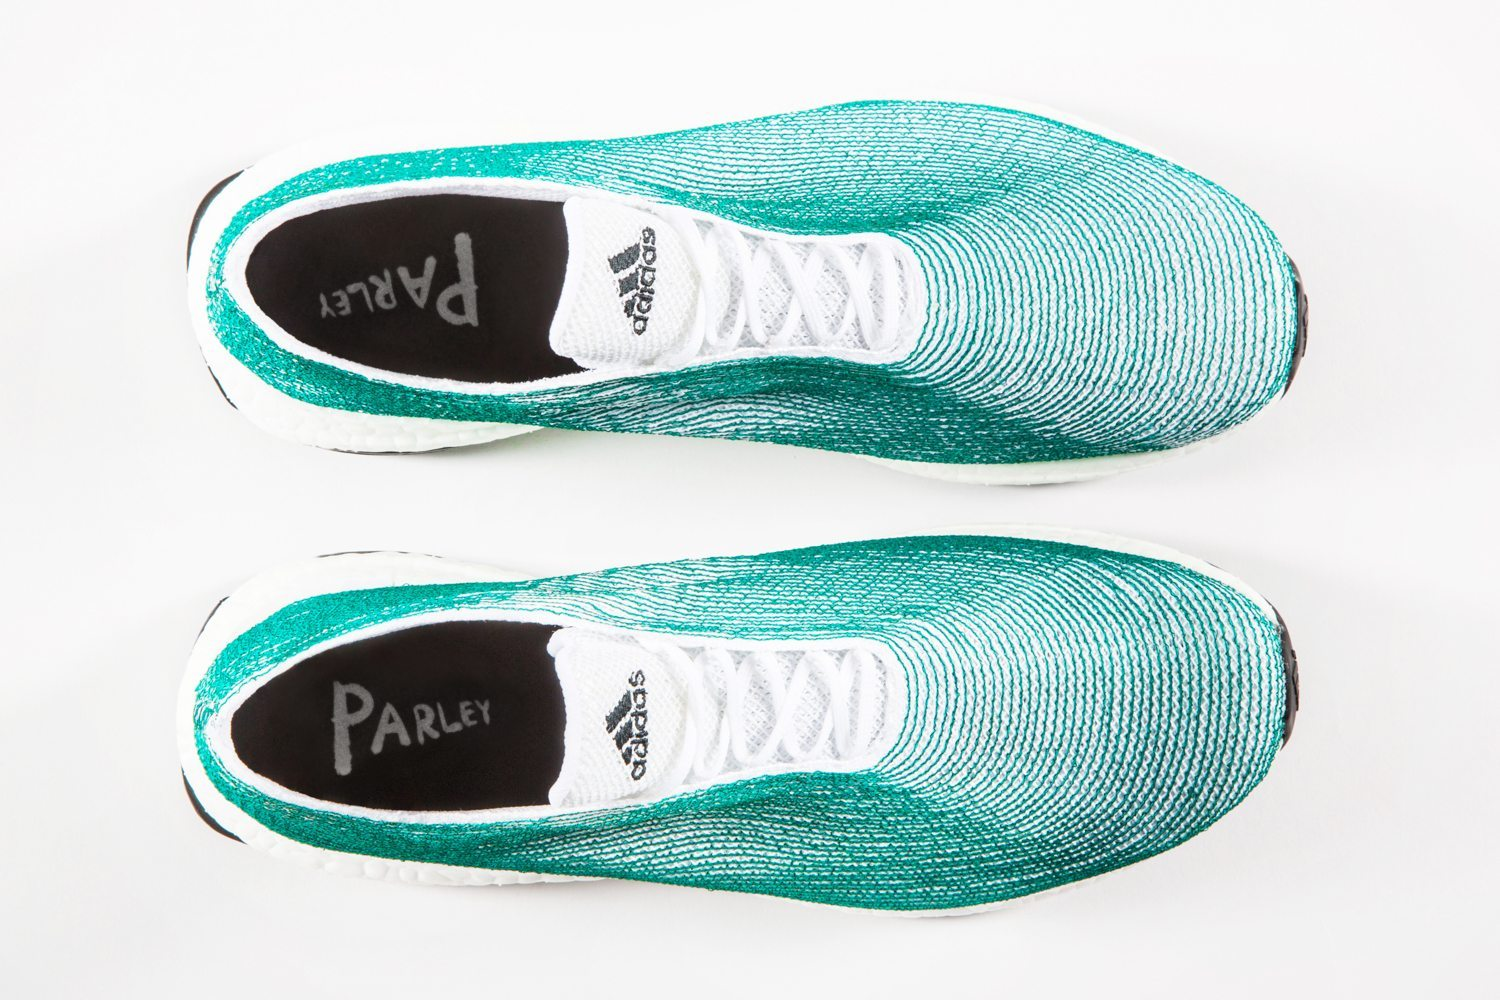 adidas x Parley Recycling Schuh 6